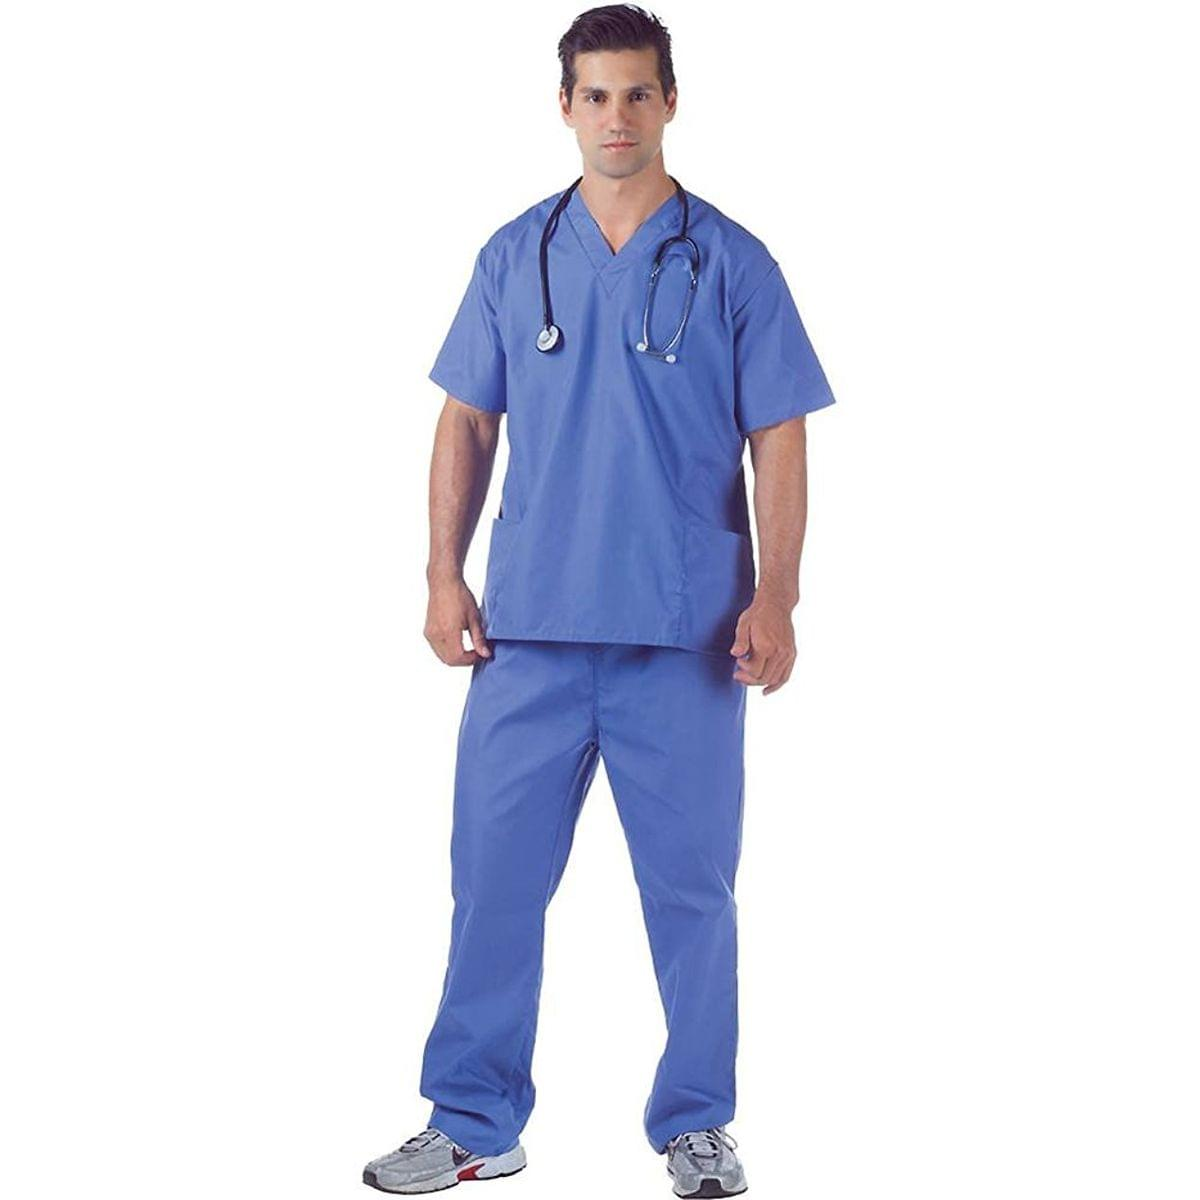 Blue Hospital Scrubs Adult Costume: One Size